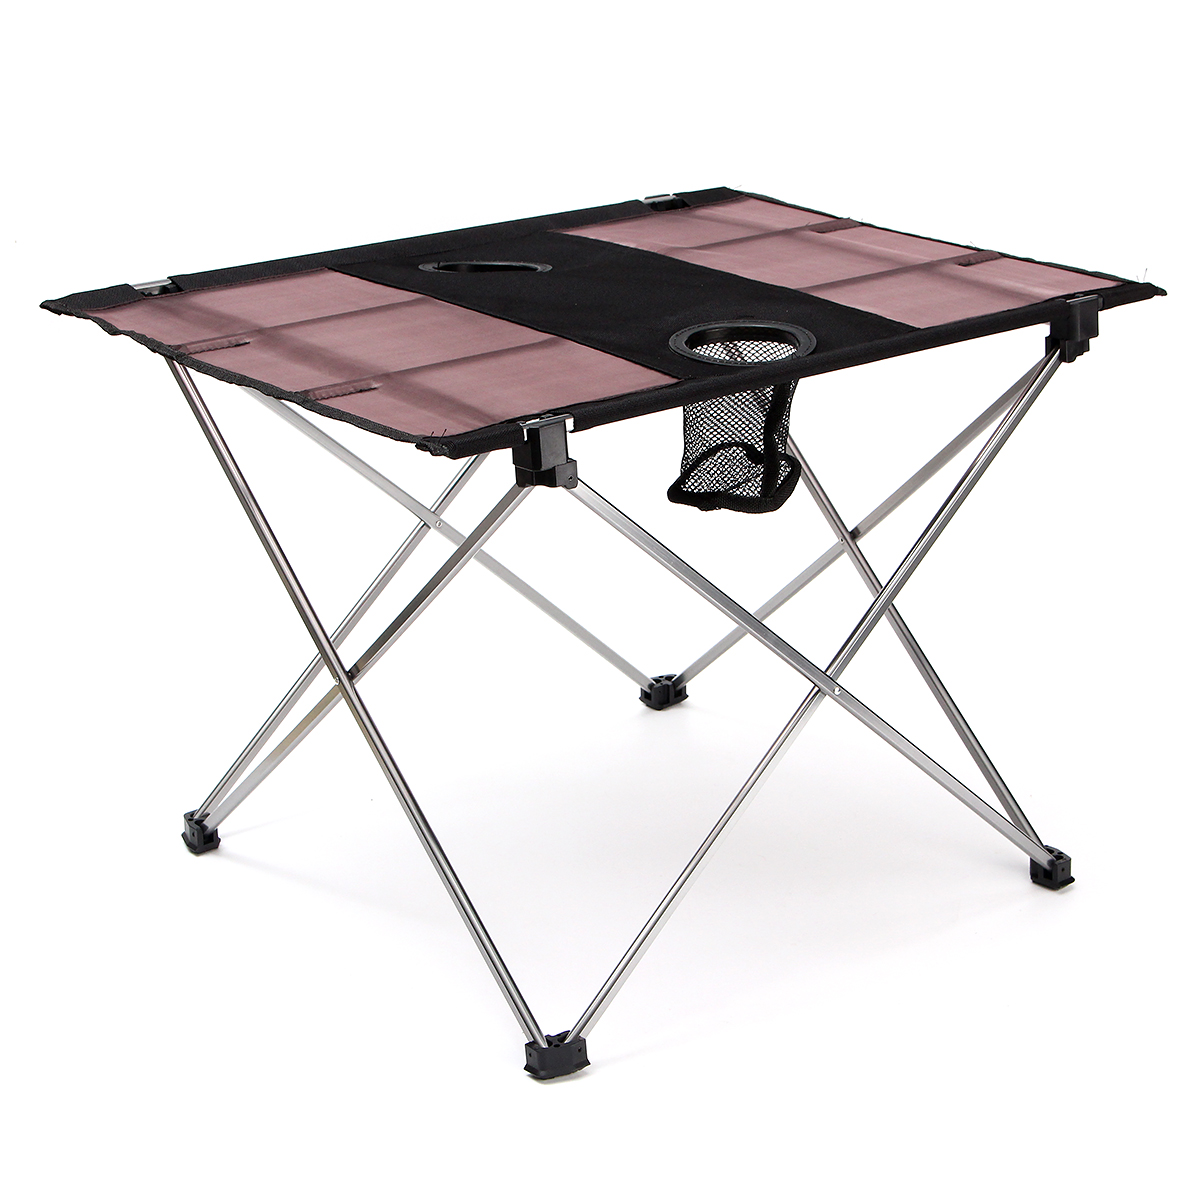 Table Aluminium Pliante Outdoor Table Pliante Portable Picnic Bureau Pliable Ultralight Alliage D Aluminium Pour Camping Randonnée